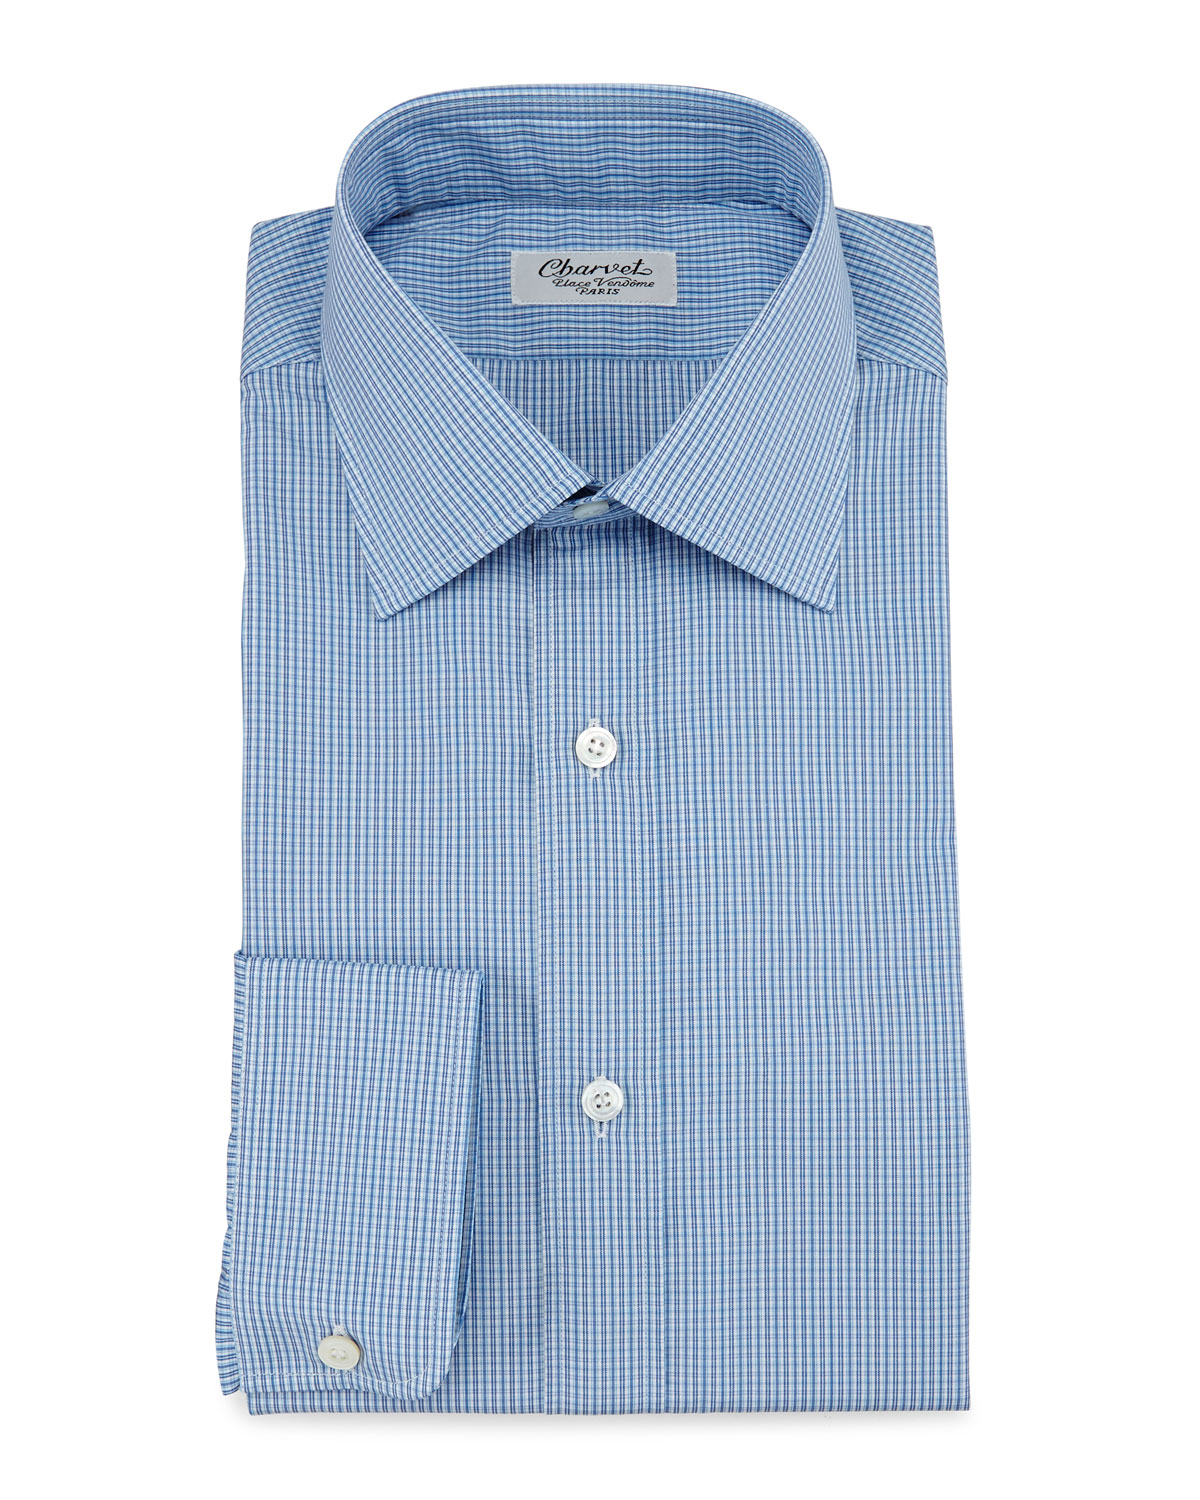 Lyst Charvet Micro Check Barrel Cuff Dress Shirt In Blue